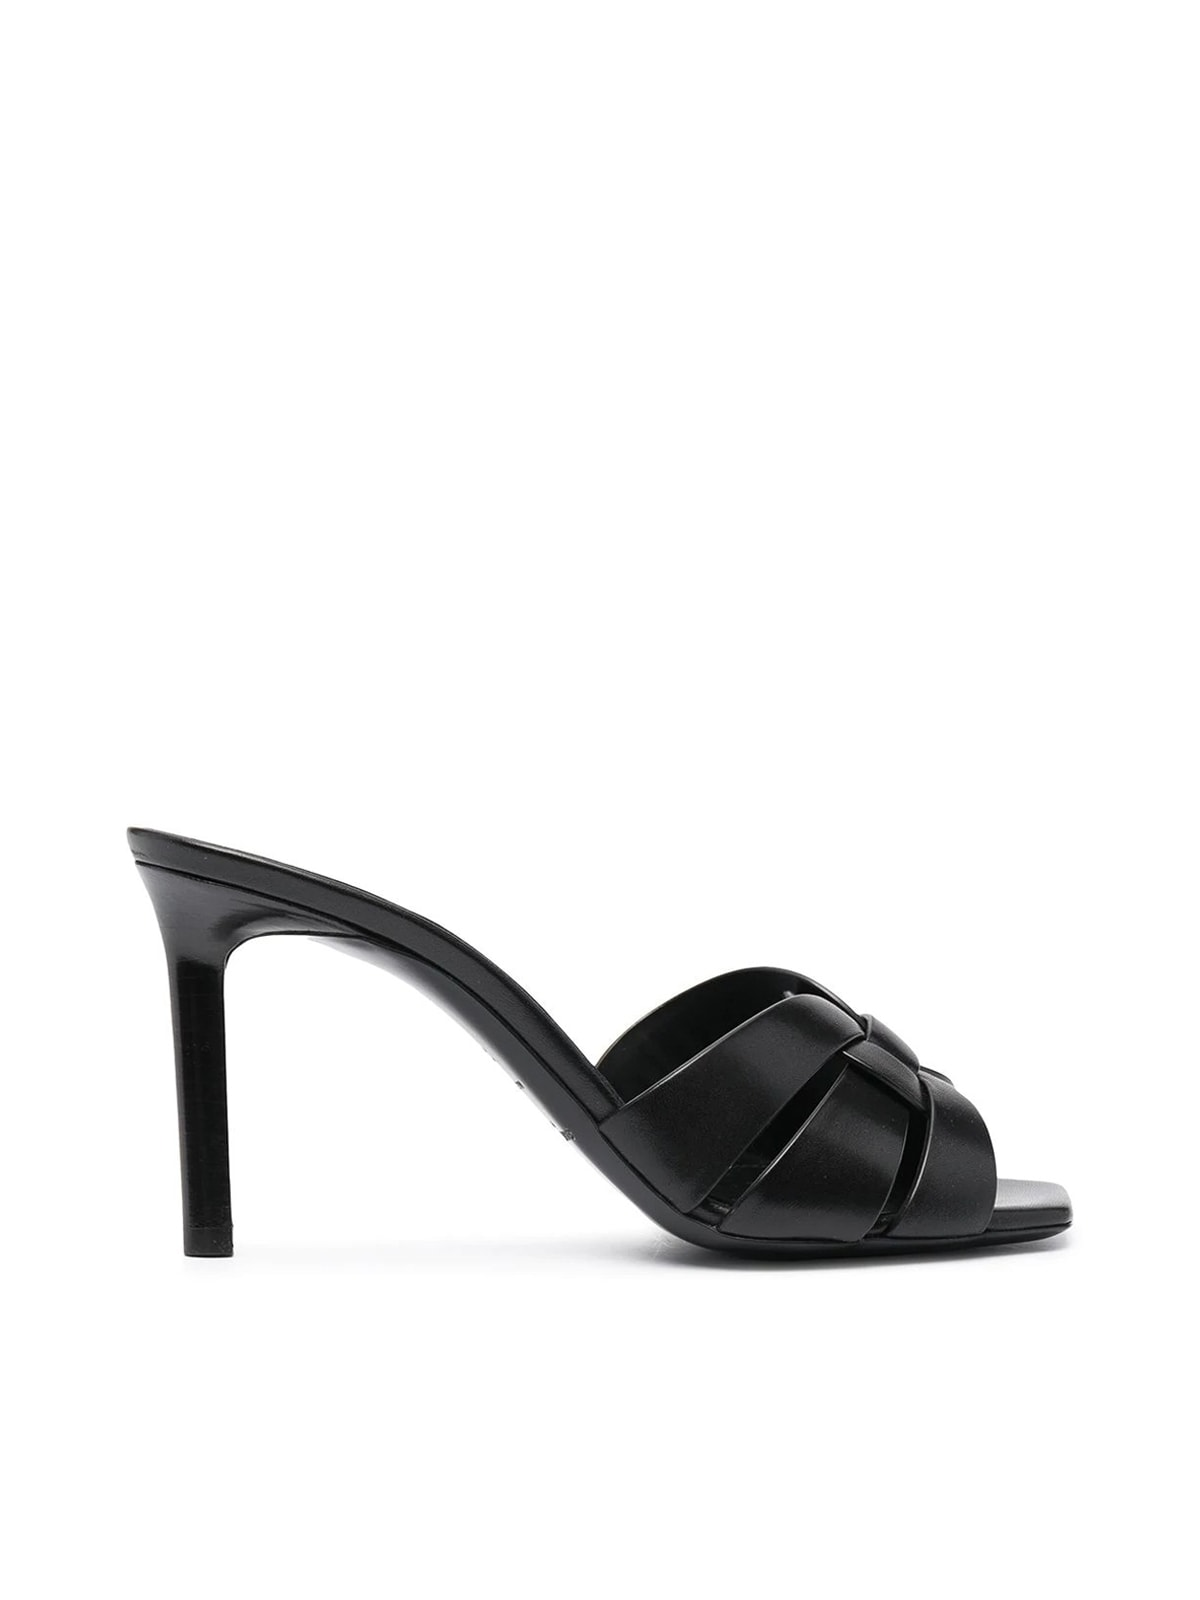 Saint Laurent Tribute 85 Mule Sandal